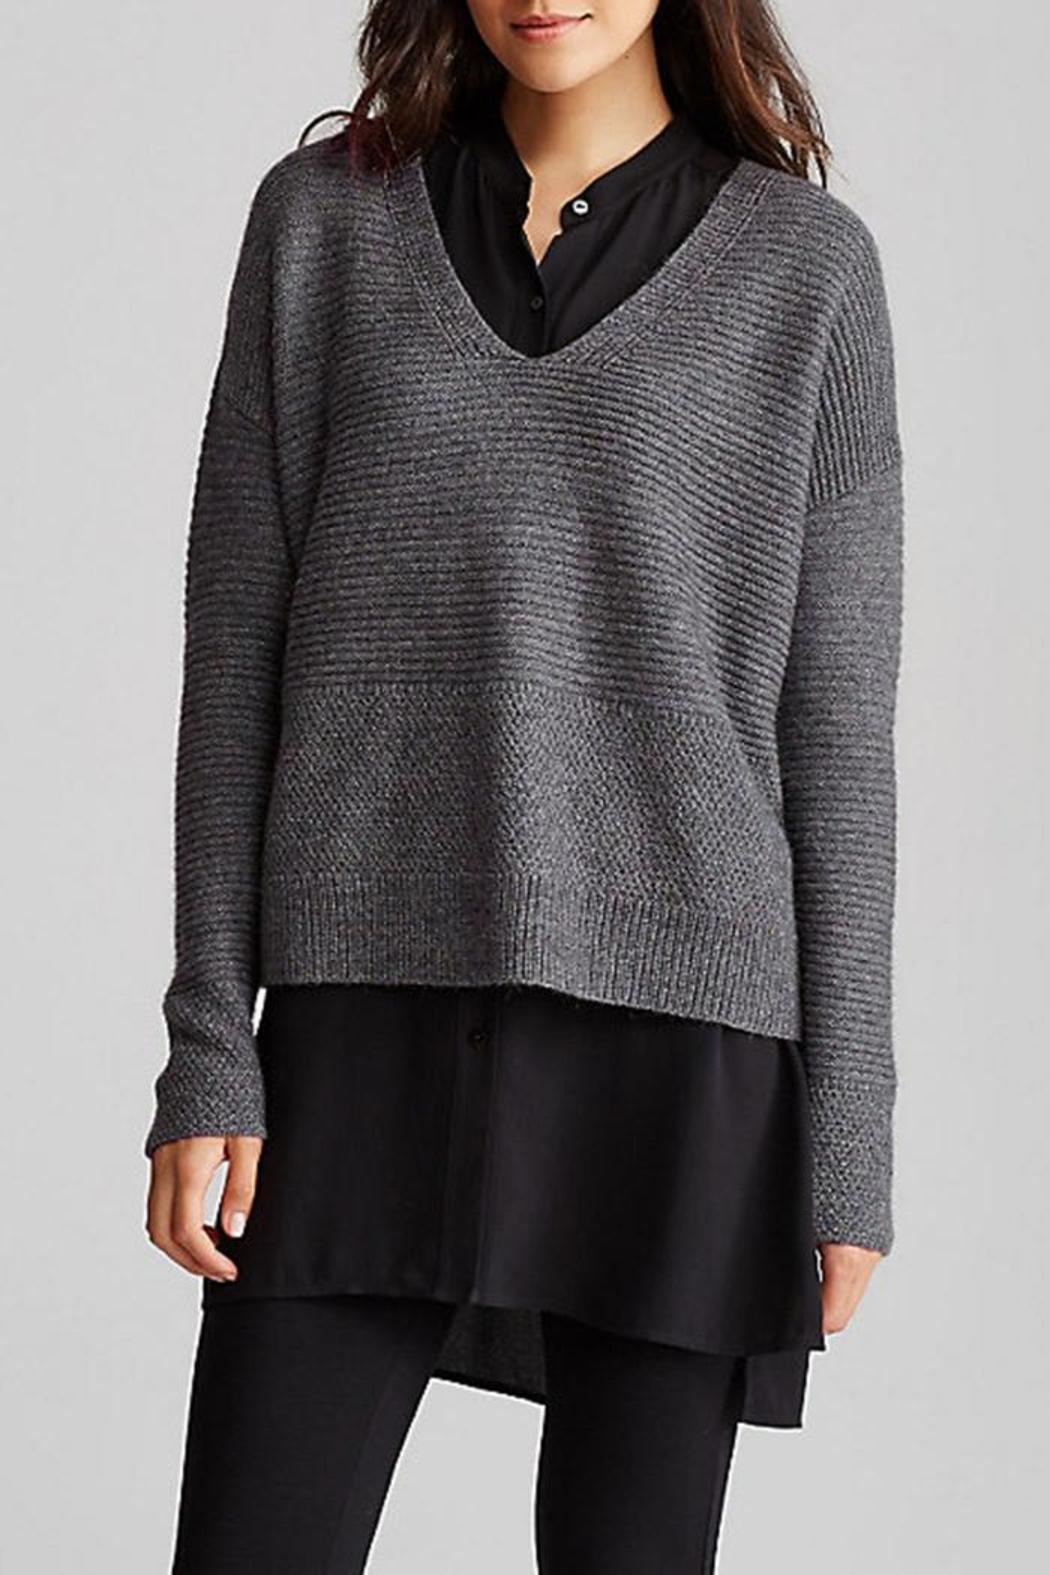 6c9ac13441f Eileen Fisher V-Neck Box Top from District of Columbia by The ...